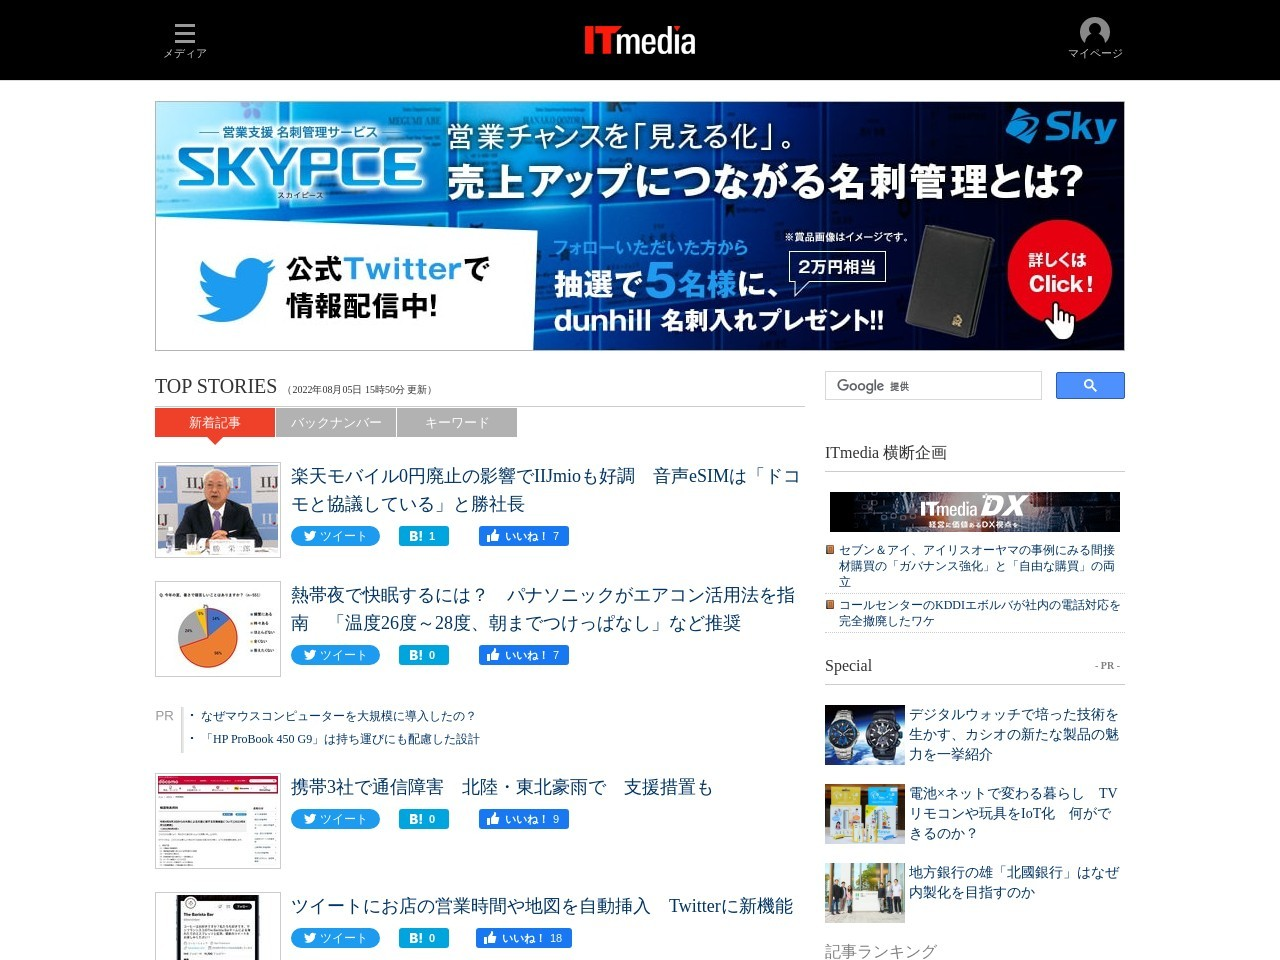 http://www.itmedia.co.jp/news/articles/1305/21/news030.html